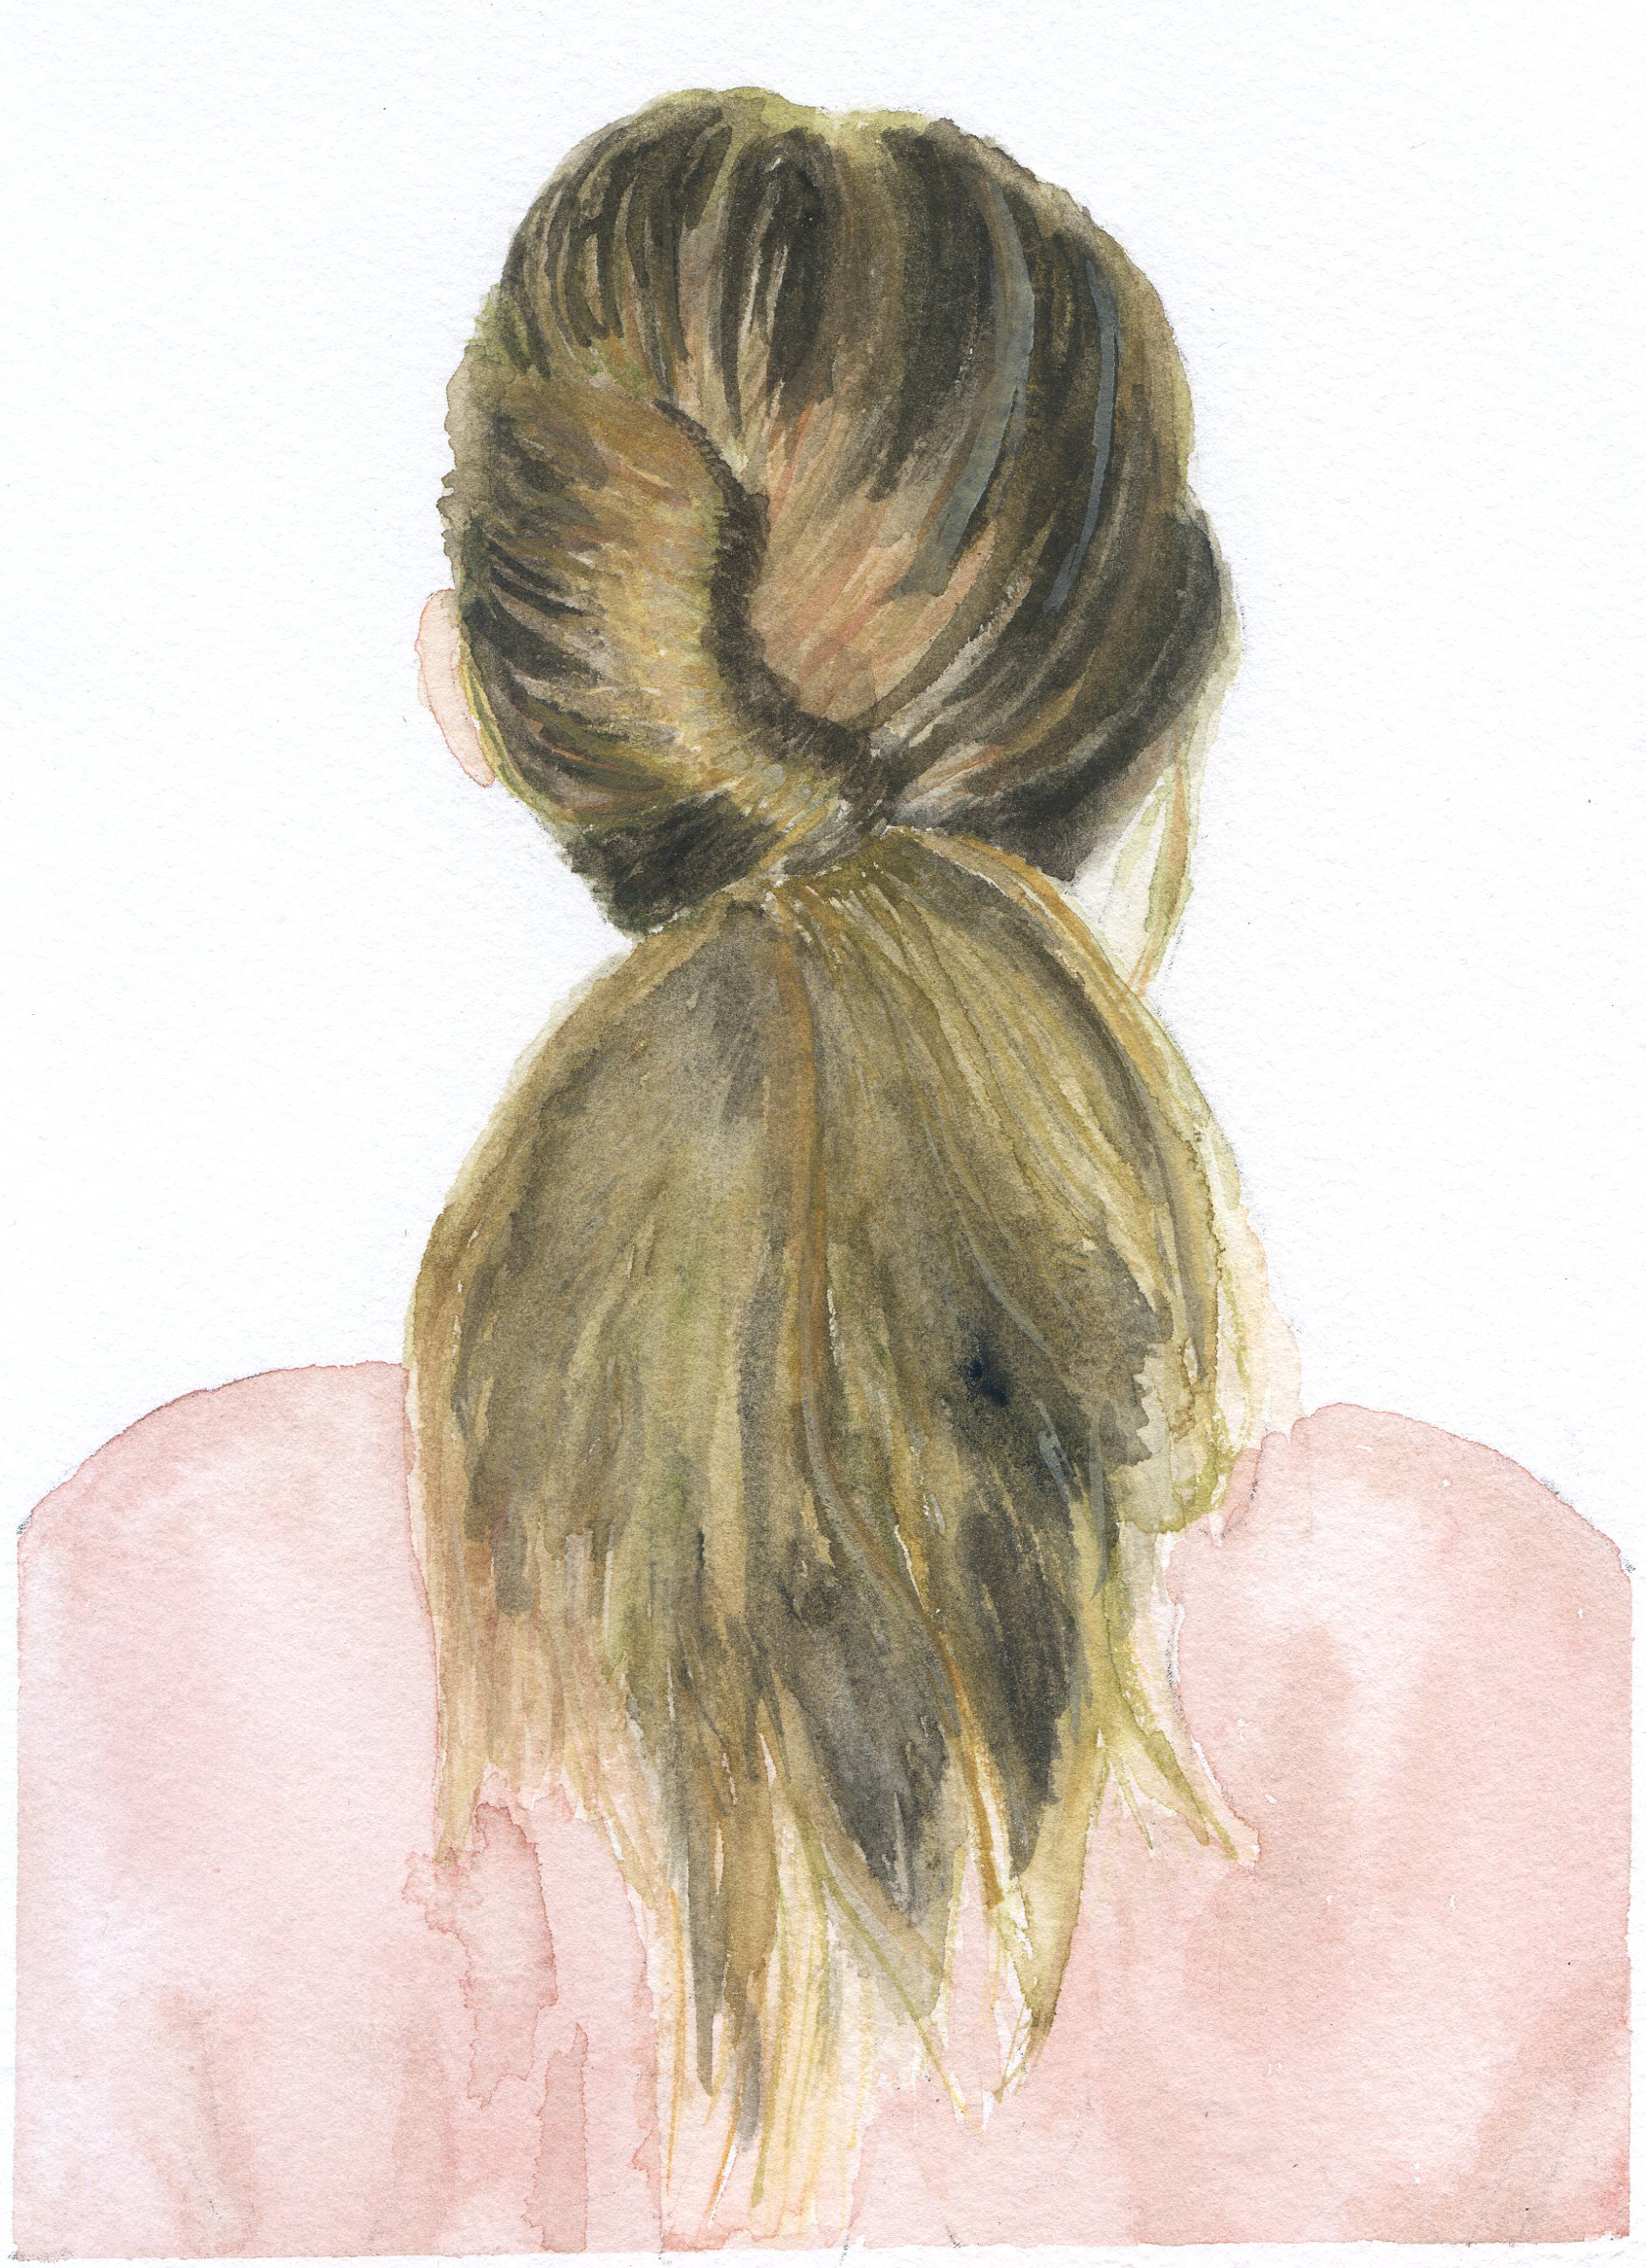 watercolor hair study.jpg